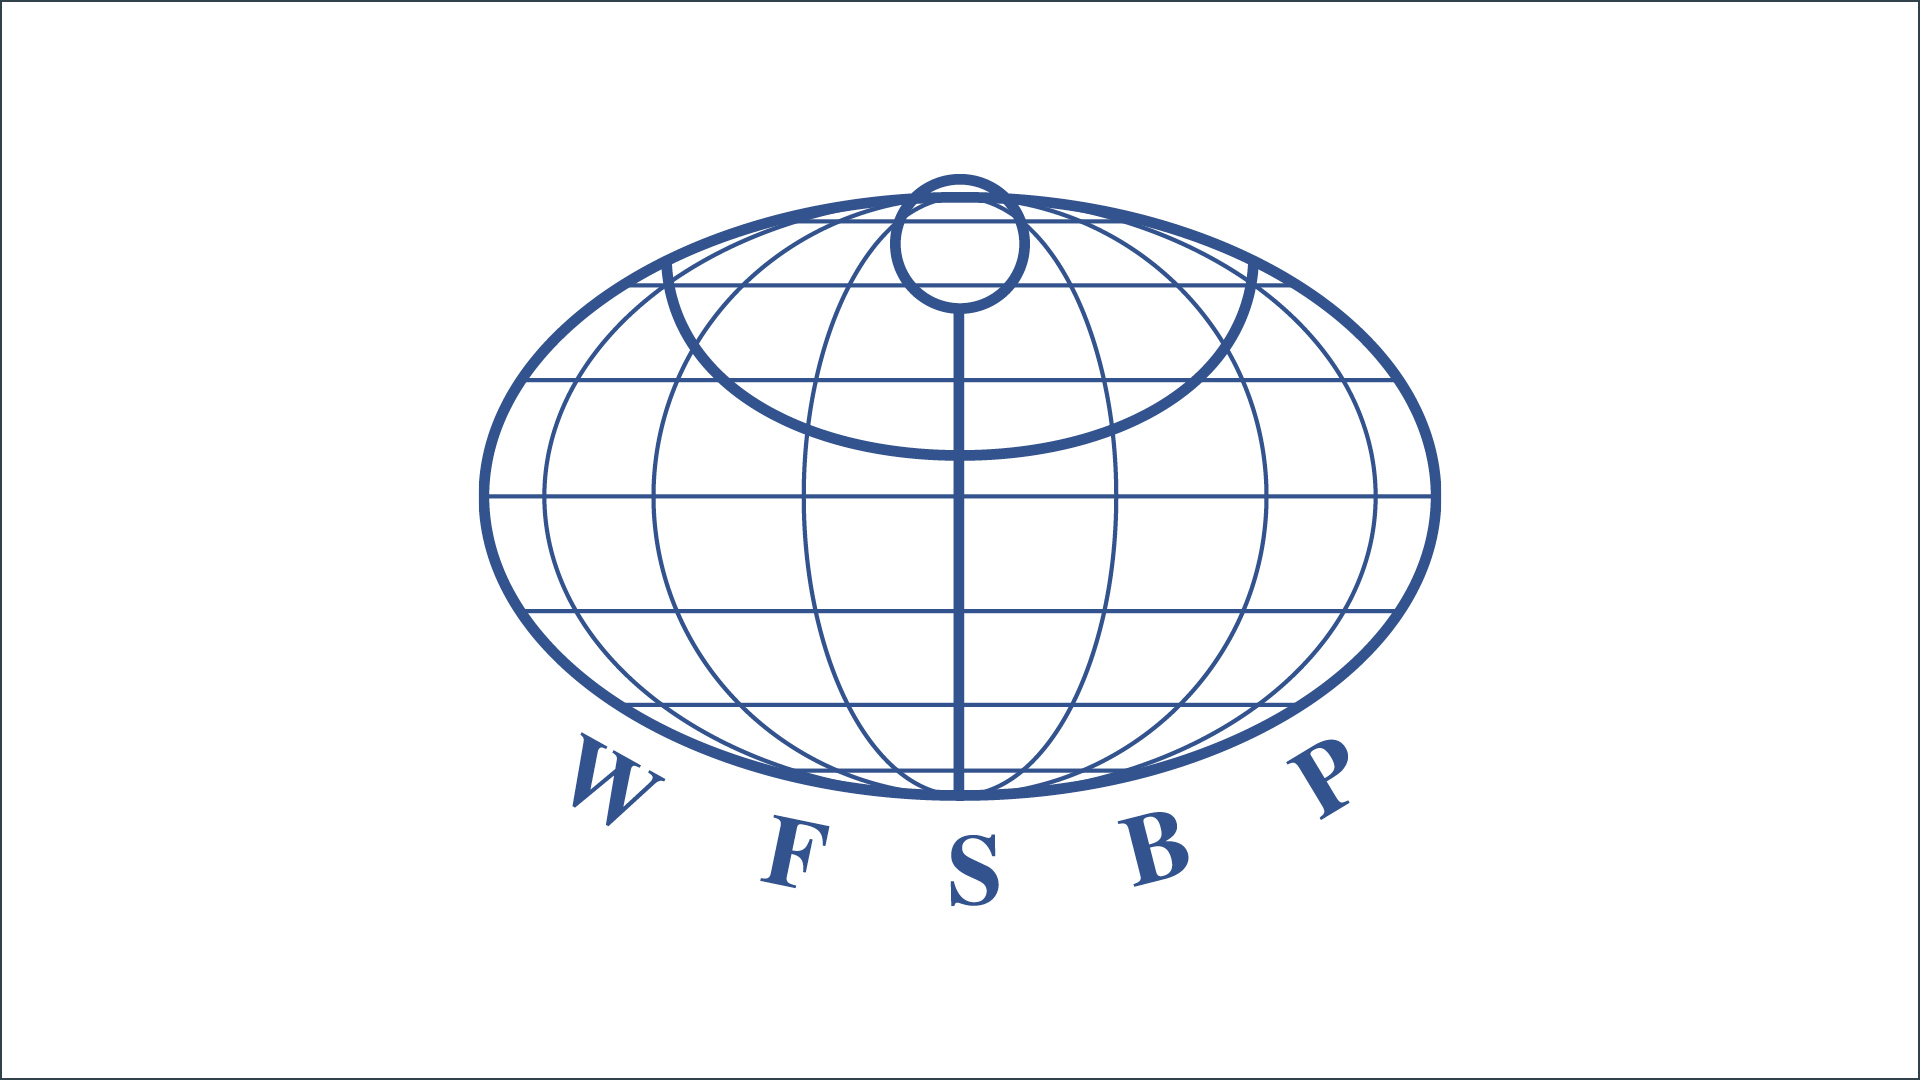 World Federation of Societies of Biological Psychiatry